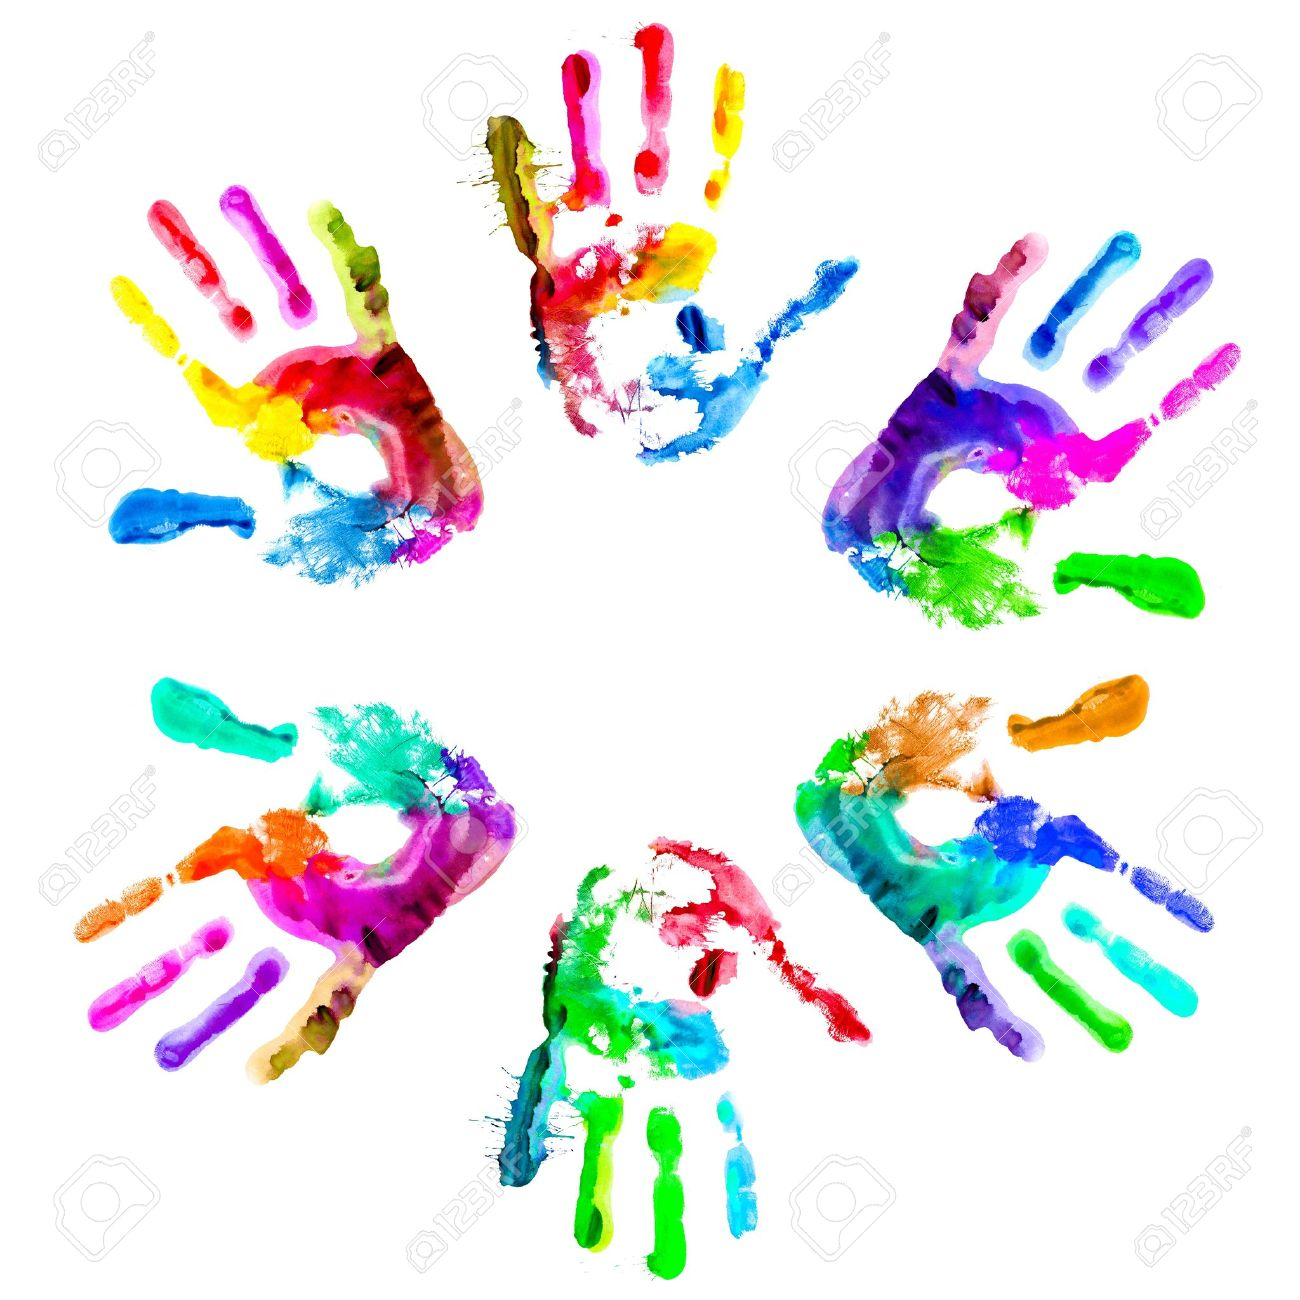 Multi coloured painted handprints arranged in a circle on a white background. - 9698534